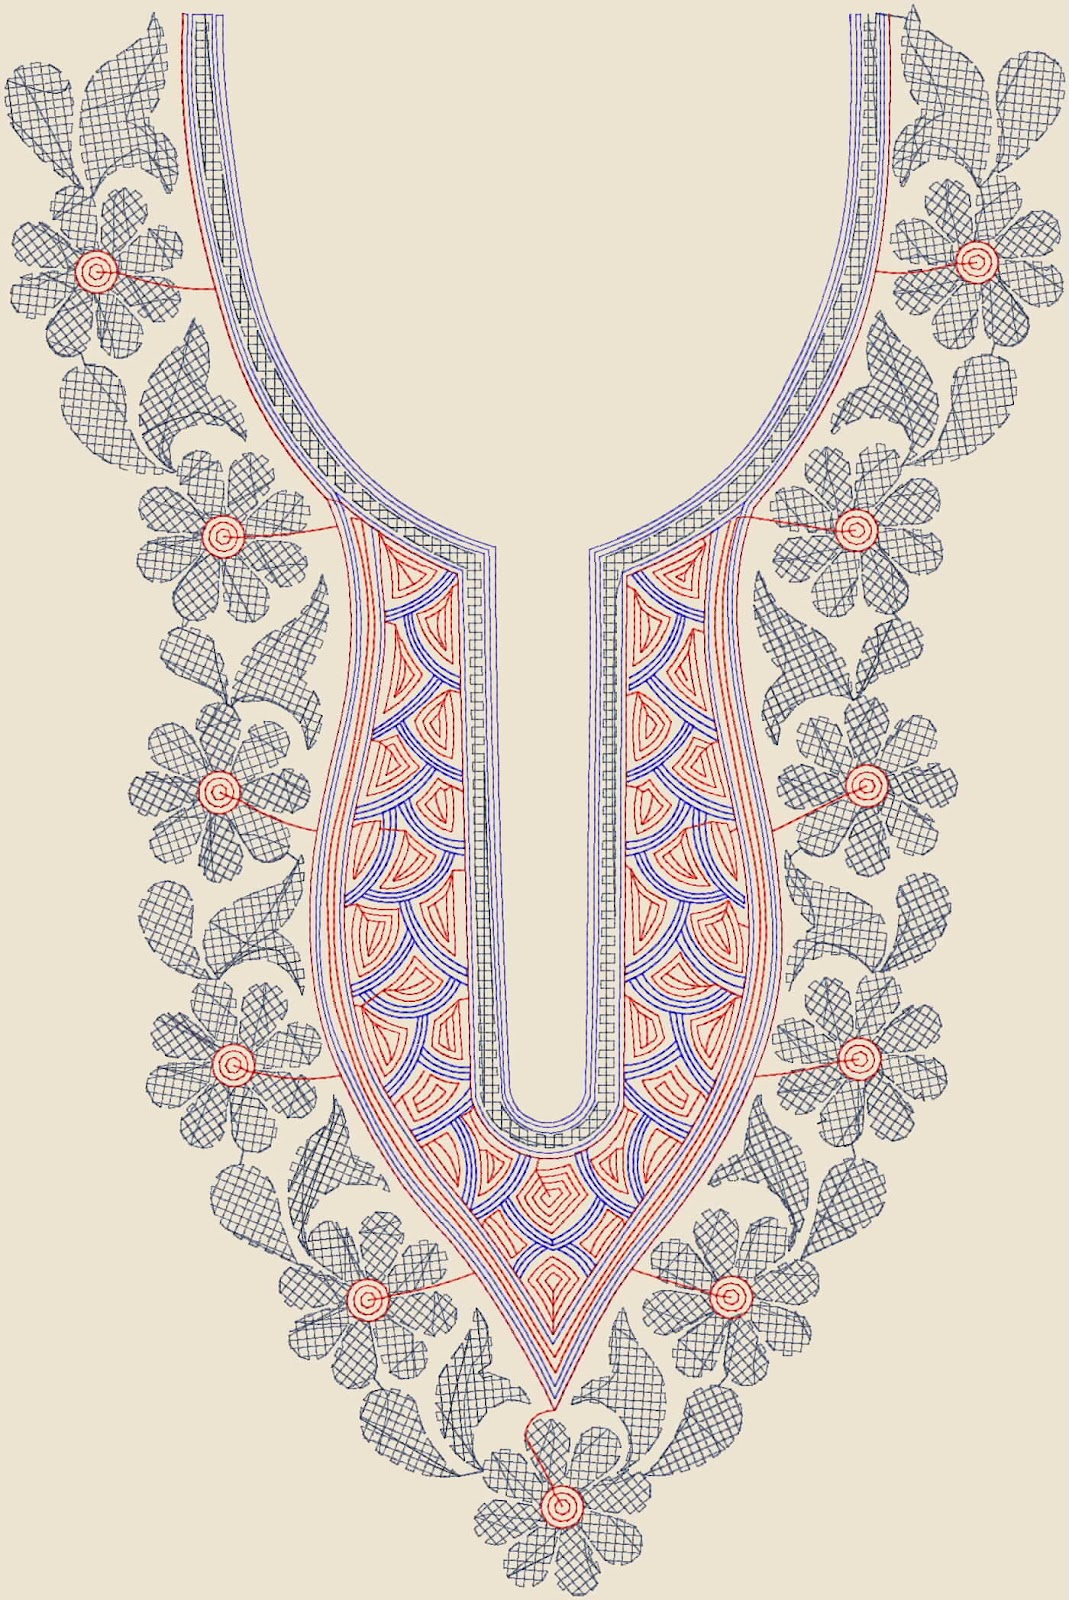 Bed sheet designs hand embroidery - Here You Can See A Fresh Computer Embroidery Design For Ladies Tunics